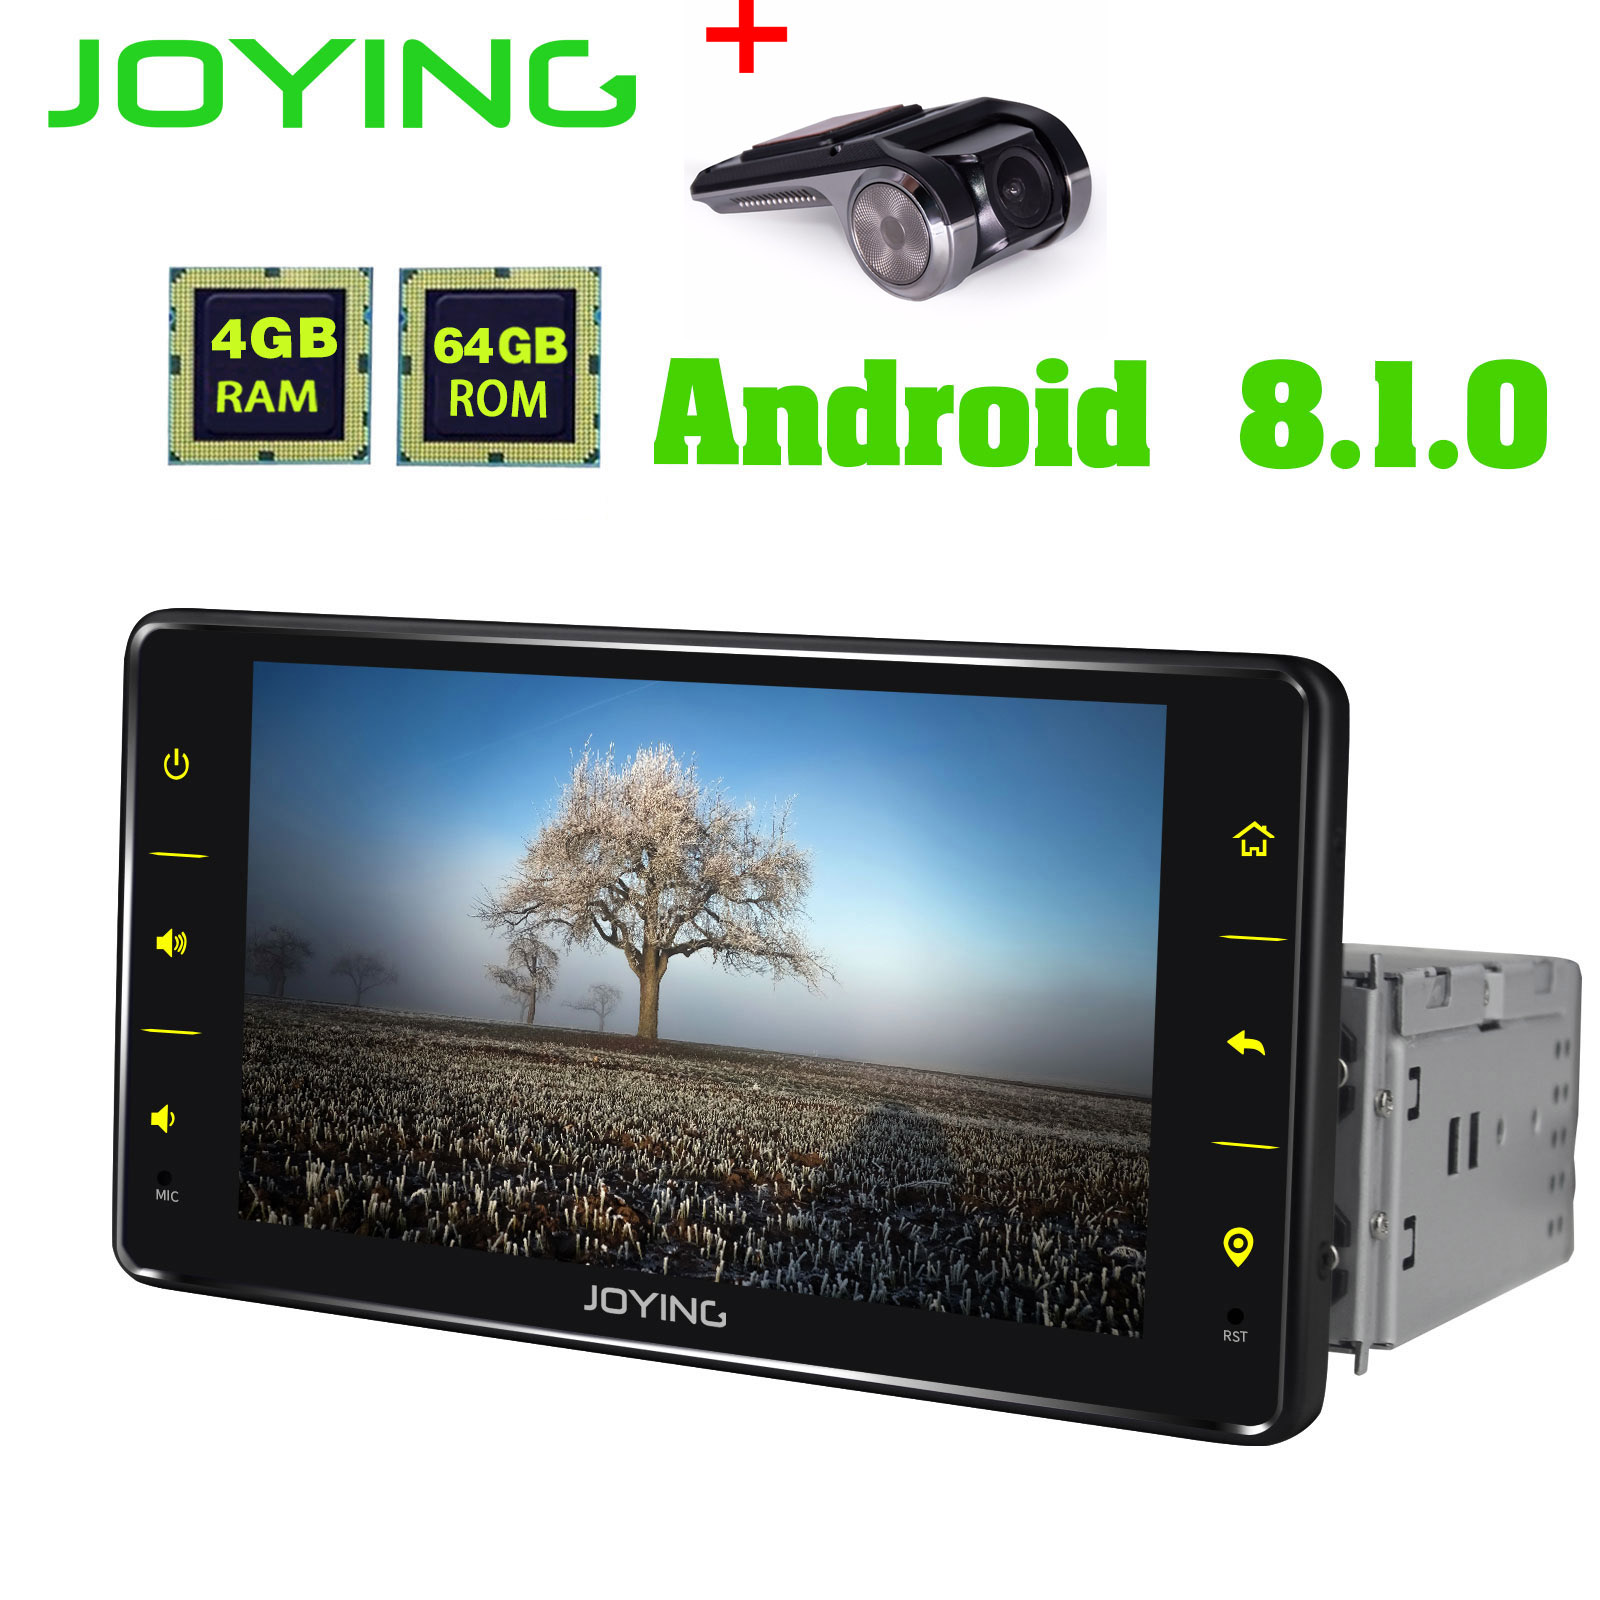 JOYING 1 din car radio Android 8.1 6.2 inch 4GB*64GB head unit support 4G/fast boot/SWC/DSP GPS tape recoder autoradio with DVR image